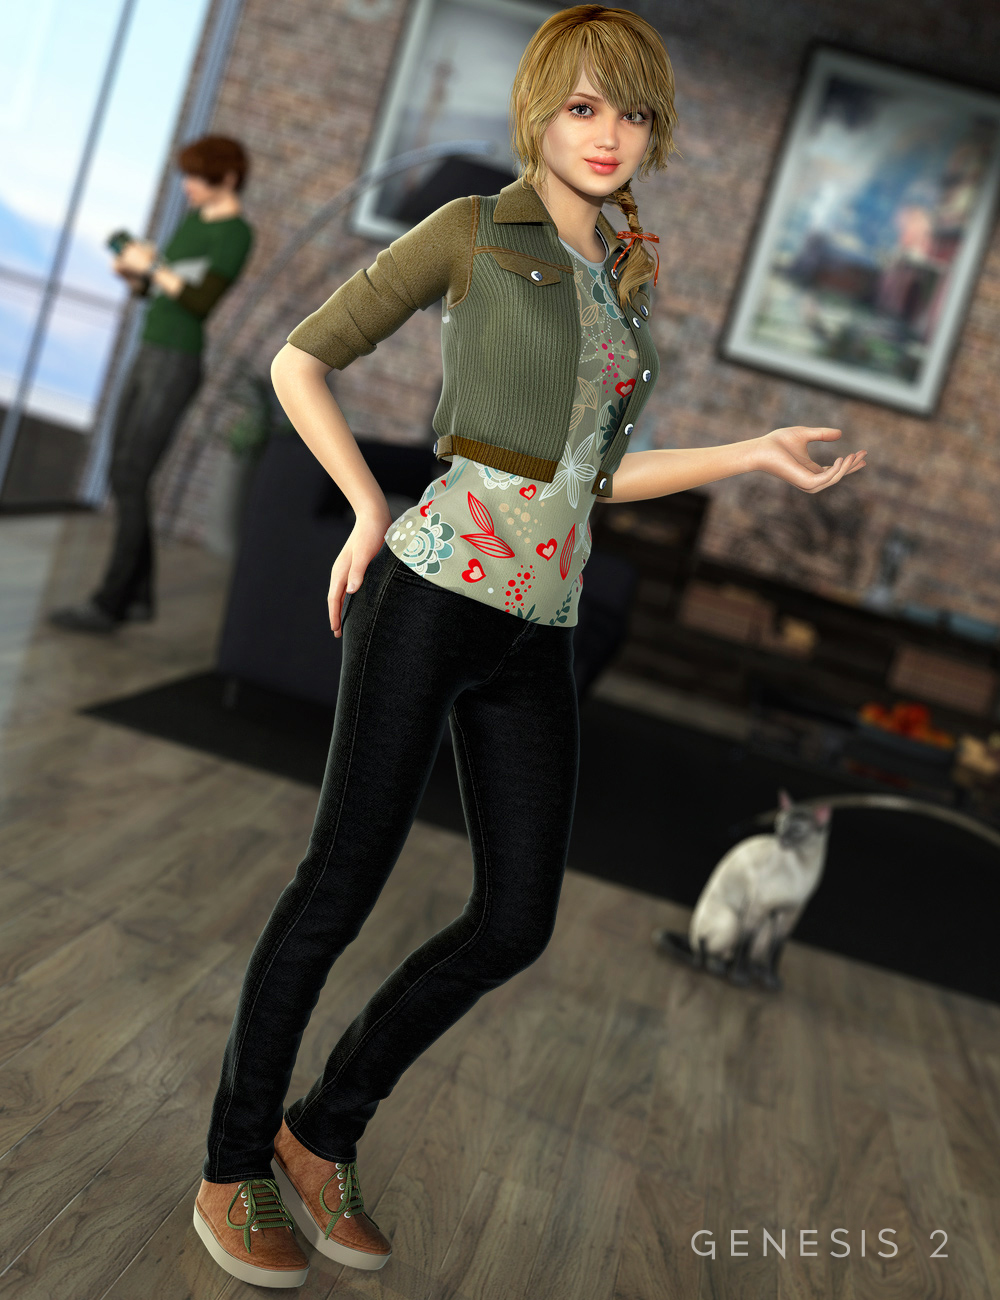 Ciao Bella Outfit for Genesis 2 Female(s) by: Mada, 3D Models by Daz 3D